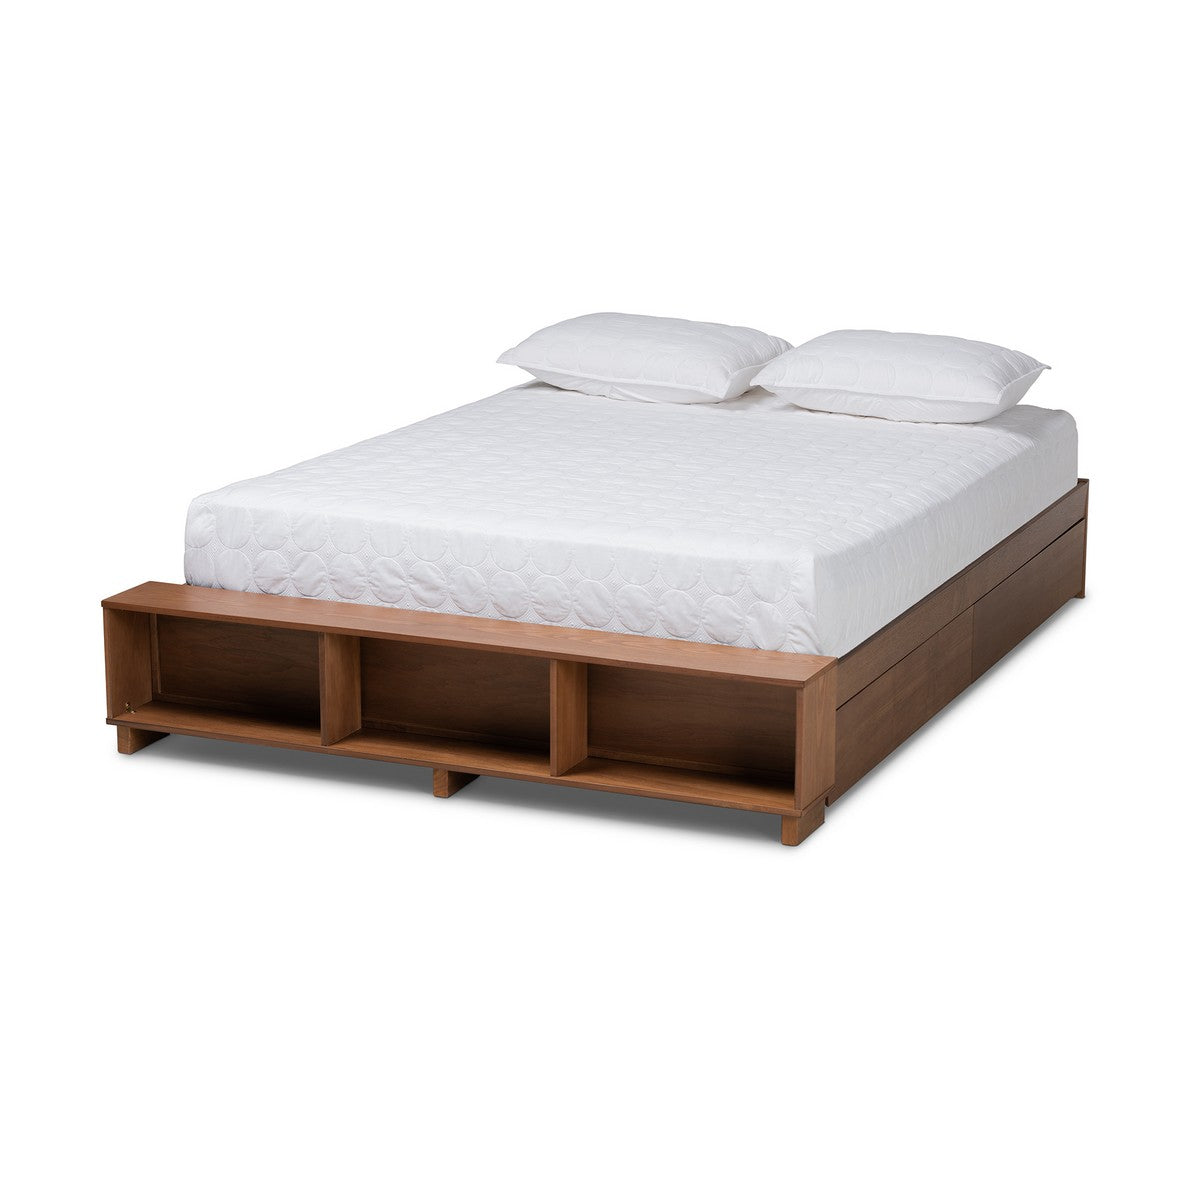 Baxton Studio Arthur Modern Rustic Ash Walnut Brown Finished Wood Full Size Platform Bed with Built-In Shelves Baxton Studio-Bed Frames-Minimal And Modern - 1